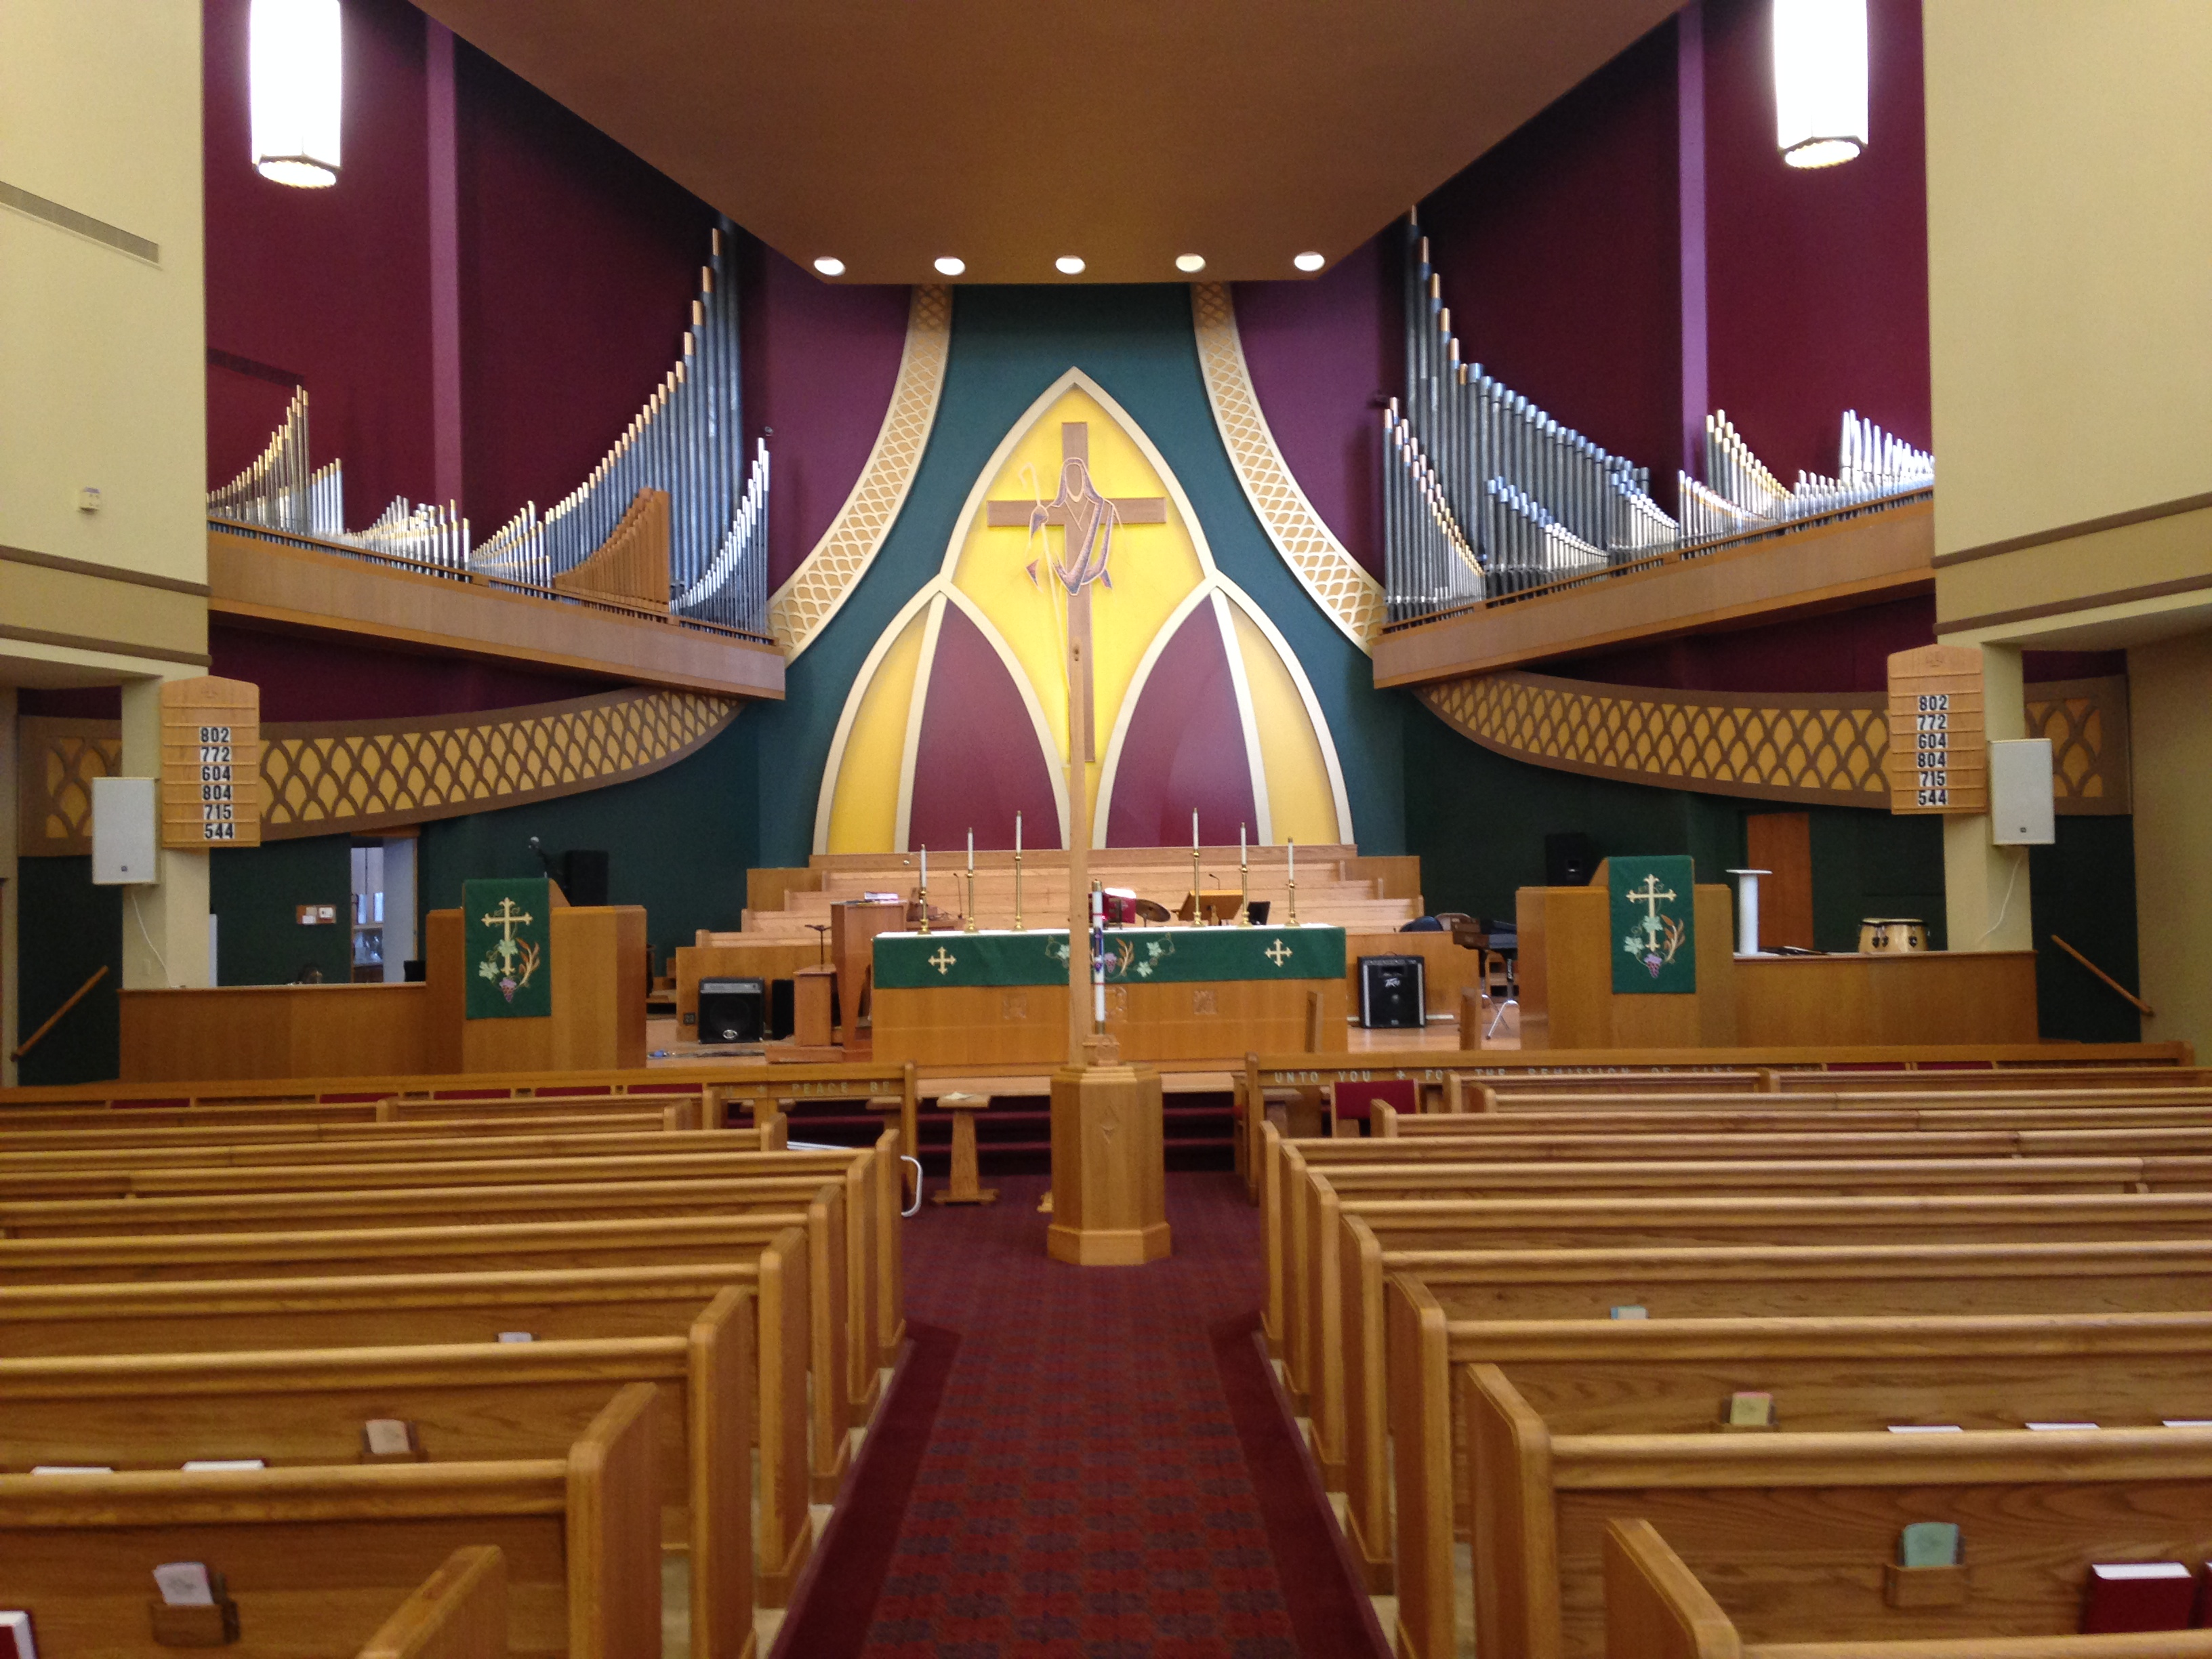 Sensational St John Lutheran Church Sanctuary Narthex Chapel Interior Design Ideas Clesiryabchikinfo